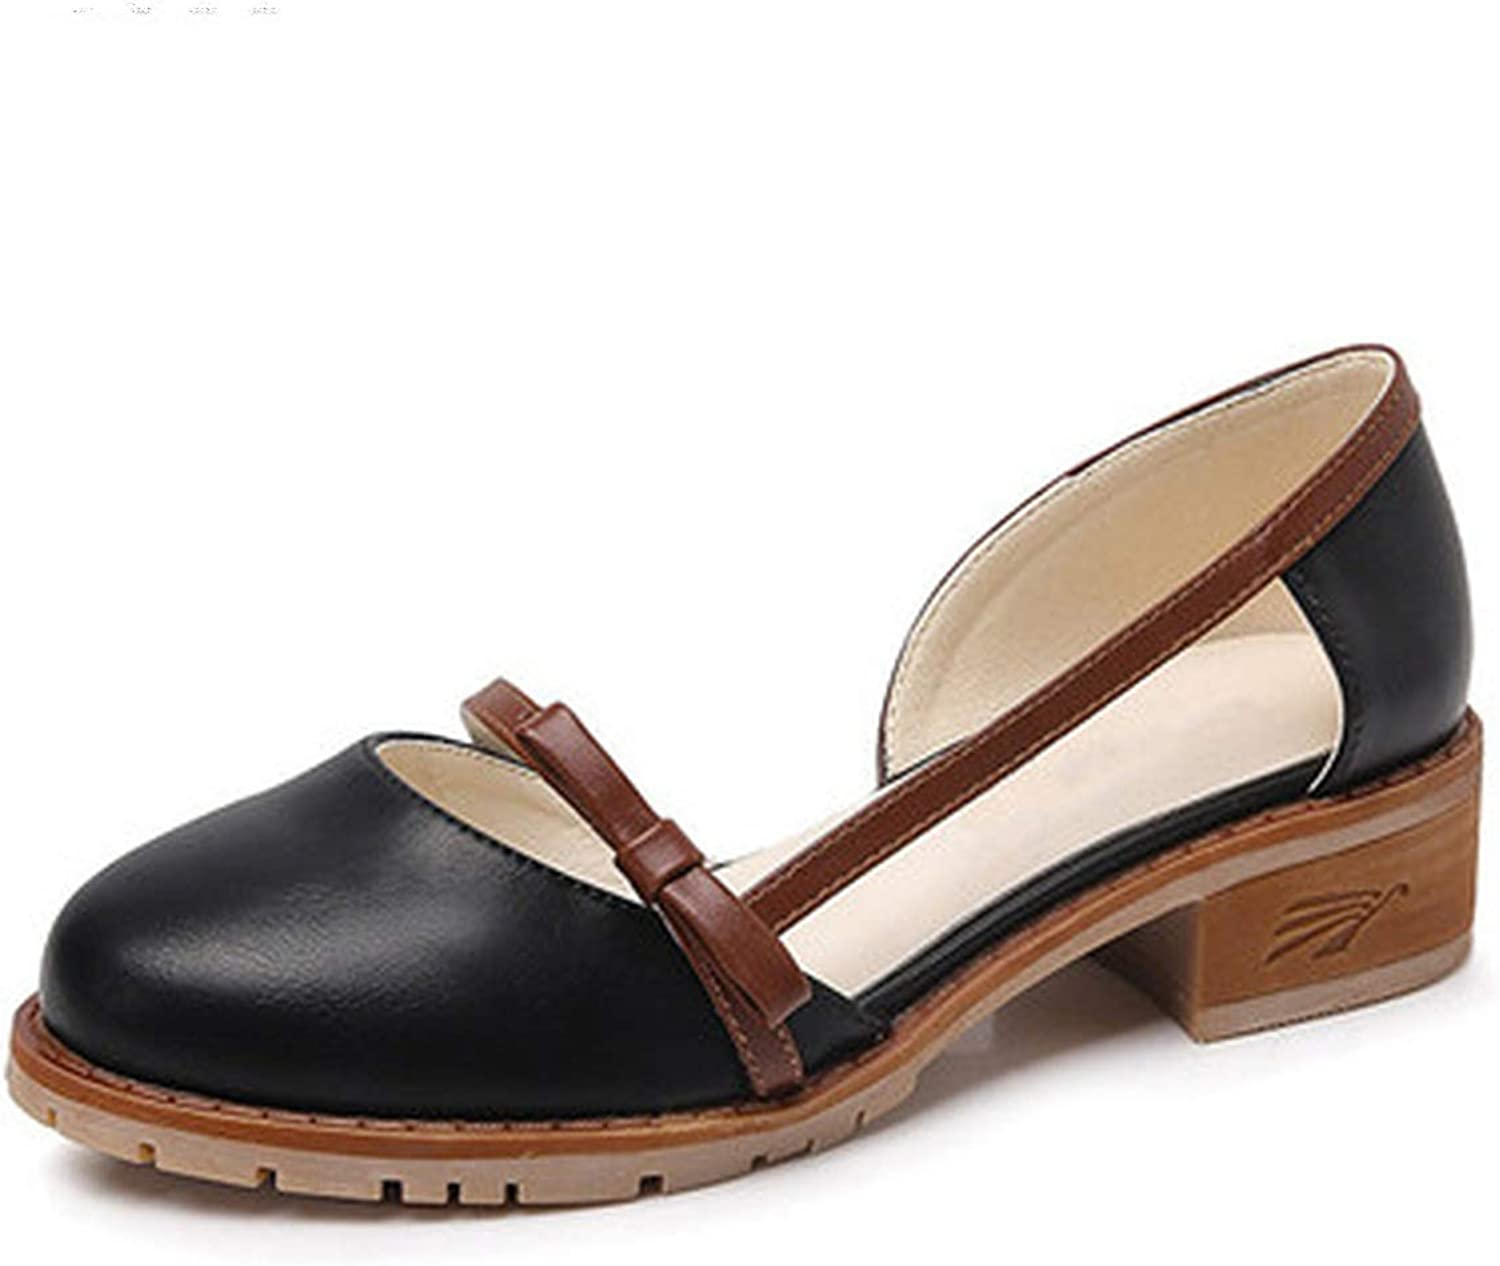 Fashion High Heels Butterfly-Knot shoes Slides Slip On Solid Lady Casual Plus Size Sandals 34-43